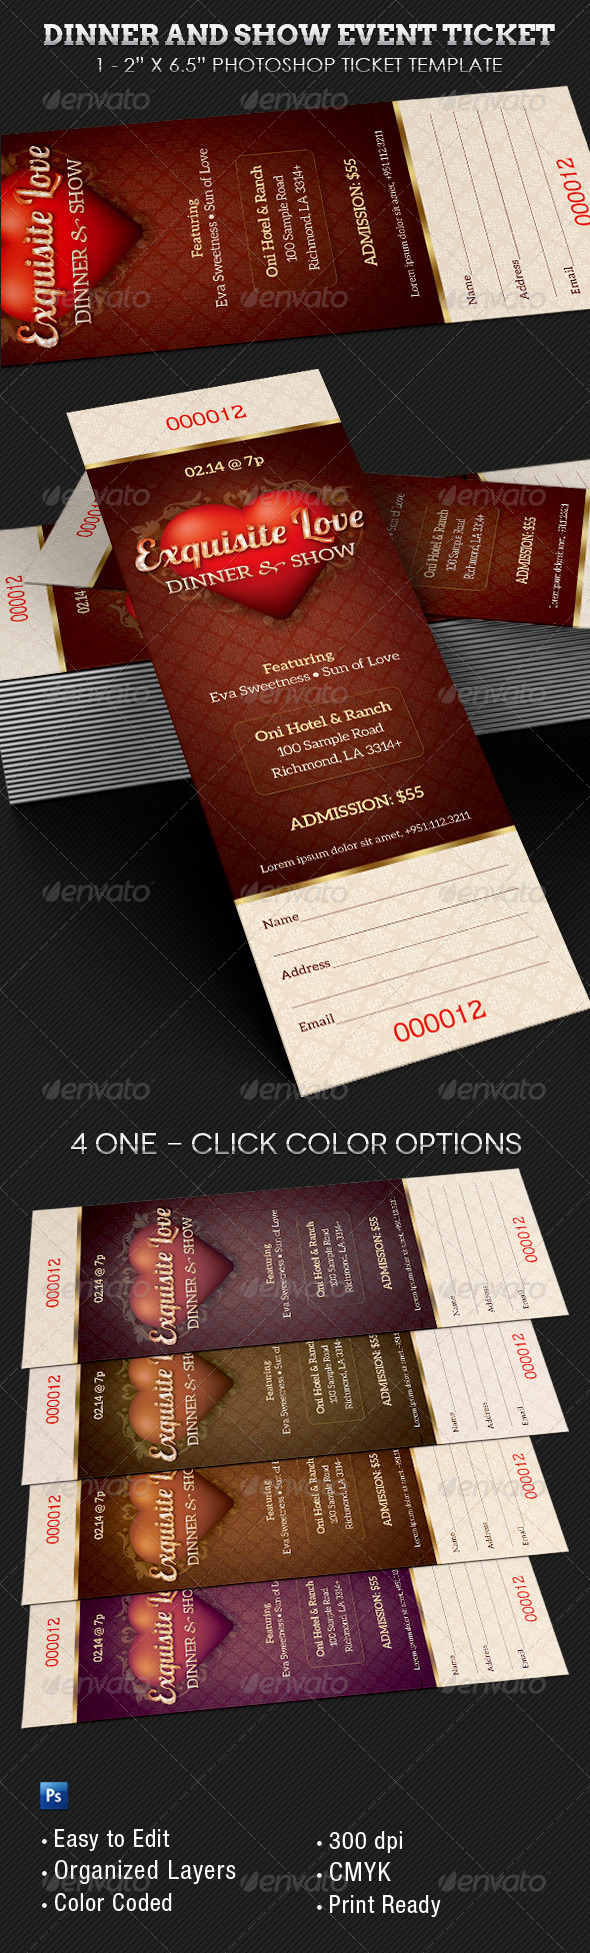 GraphicRiver Dinner and Dance Event Ticket Template 6800521